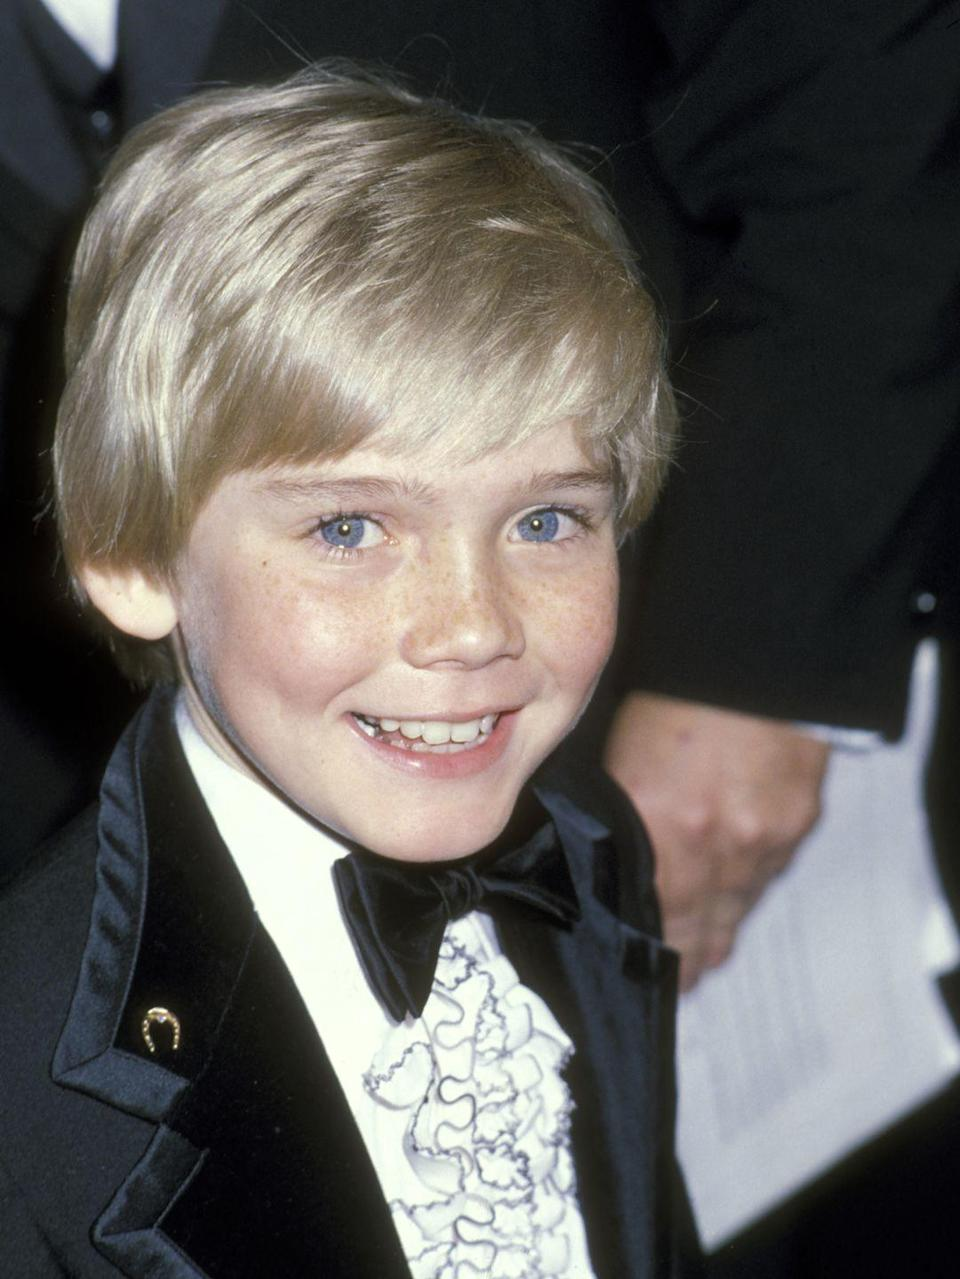 """<p>Ricky made his screen debut at age 9 in the movie <em>The Champ, </em>for which he received a <a href=""""https://www.goodhousekeeping.com/life/entertainment/news/g5027/cutest-couples-golden-globes-2018/"""" rel=""""nofollow noopener"""" target=""""_blank"""" data-ylk=""""slk:Golden Globe award"""" class=""""link rapid-noclick-resp"""">Golden Globe award</a>. He had a few other movie roles before going on to star in the sitcom <em><a href=""""https://www.amazon.com/Pilot/dp/B0013HDCKO/?tag=syn-yahoo-20&ascsubtag=%5Bartid%7C10050.g.24736857%5Bsrc%7Cyahoo-us"""" rel=""""nofollow noopener"""" target=""""_blank"""" data-ylk=""""slk:Silver Spoons"""" class=""""link rapid-noclick-resp"""">Silver Spoons</a></em>, playing a rich kid with the usual problems (you know, like a millionaire father). He's since had many recurring TV show roles, including on <em>NYPD Blue</em>.</p>"""